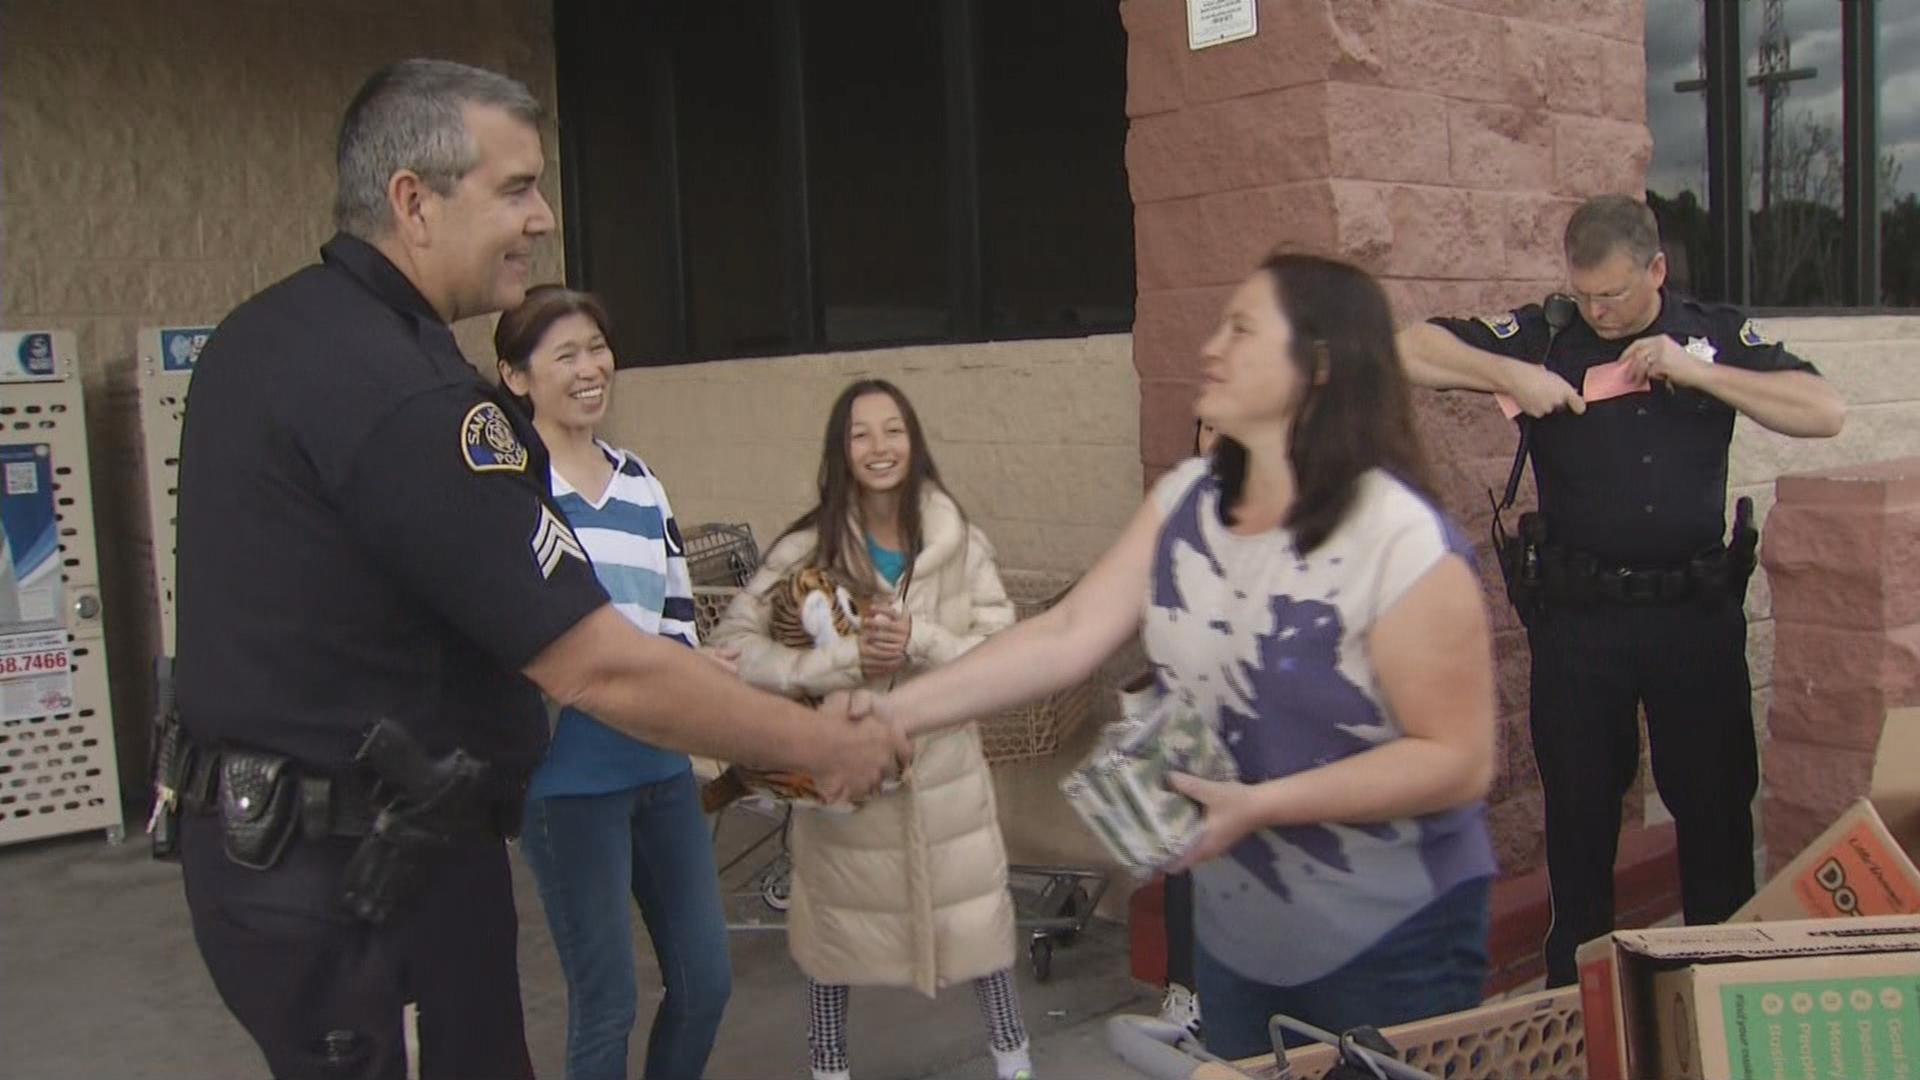 The mother of Sophia Contos shakes hands with a San Jose police officer who helped retrieve a stolen Girl Scout Cookies cash box.